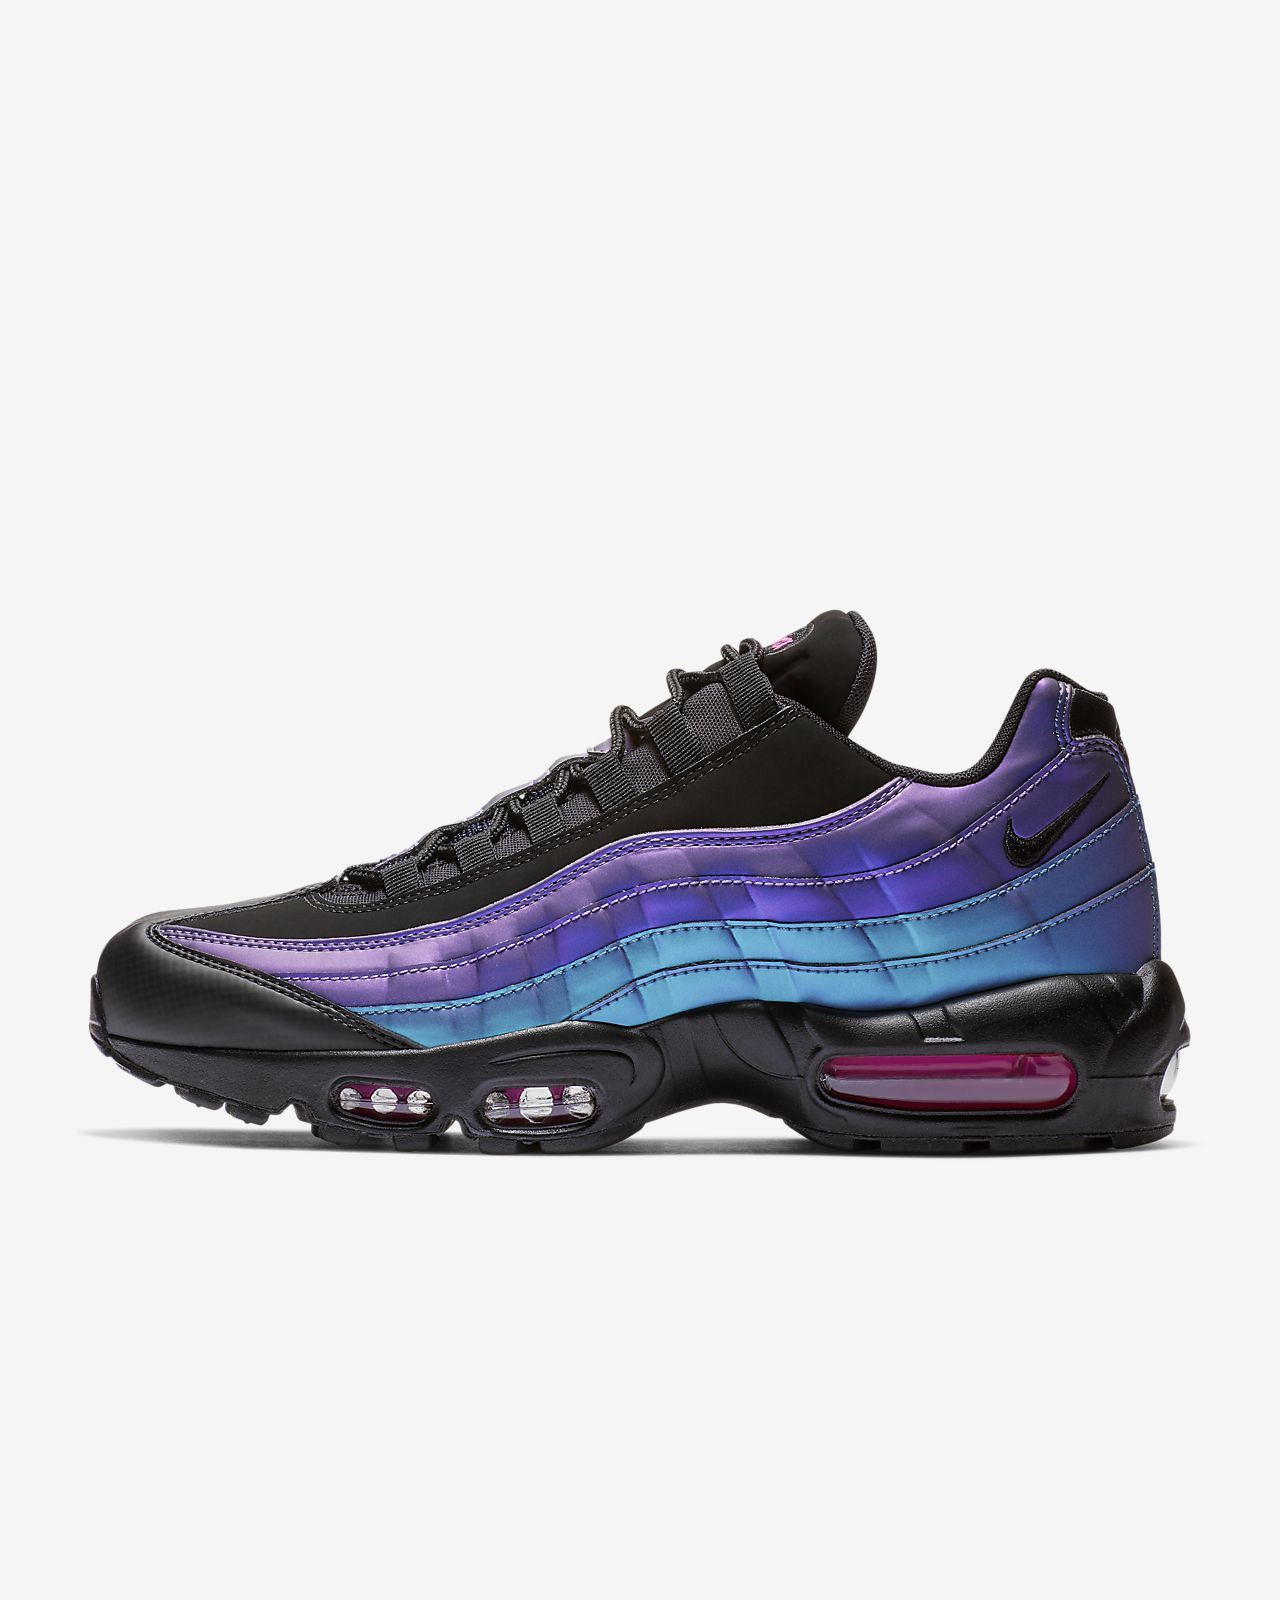 reputable site fcfe4 a7d74 Men s Shoe. Nike Air Max 95 Premium